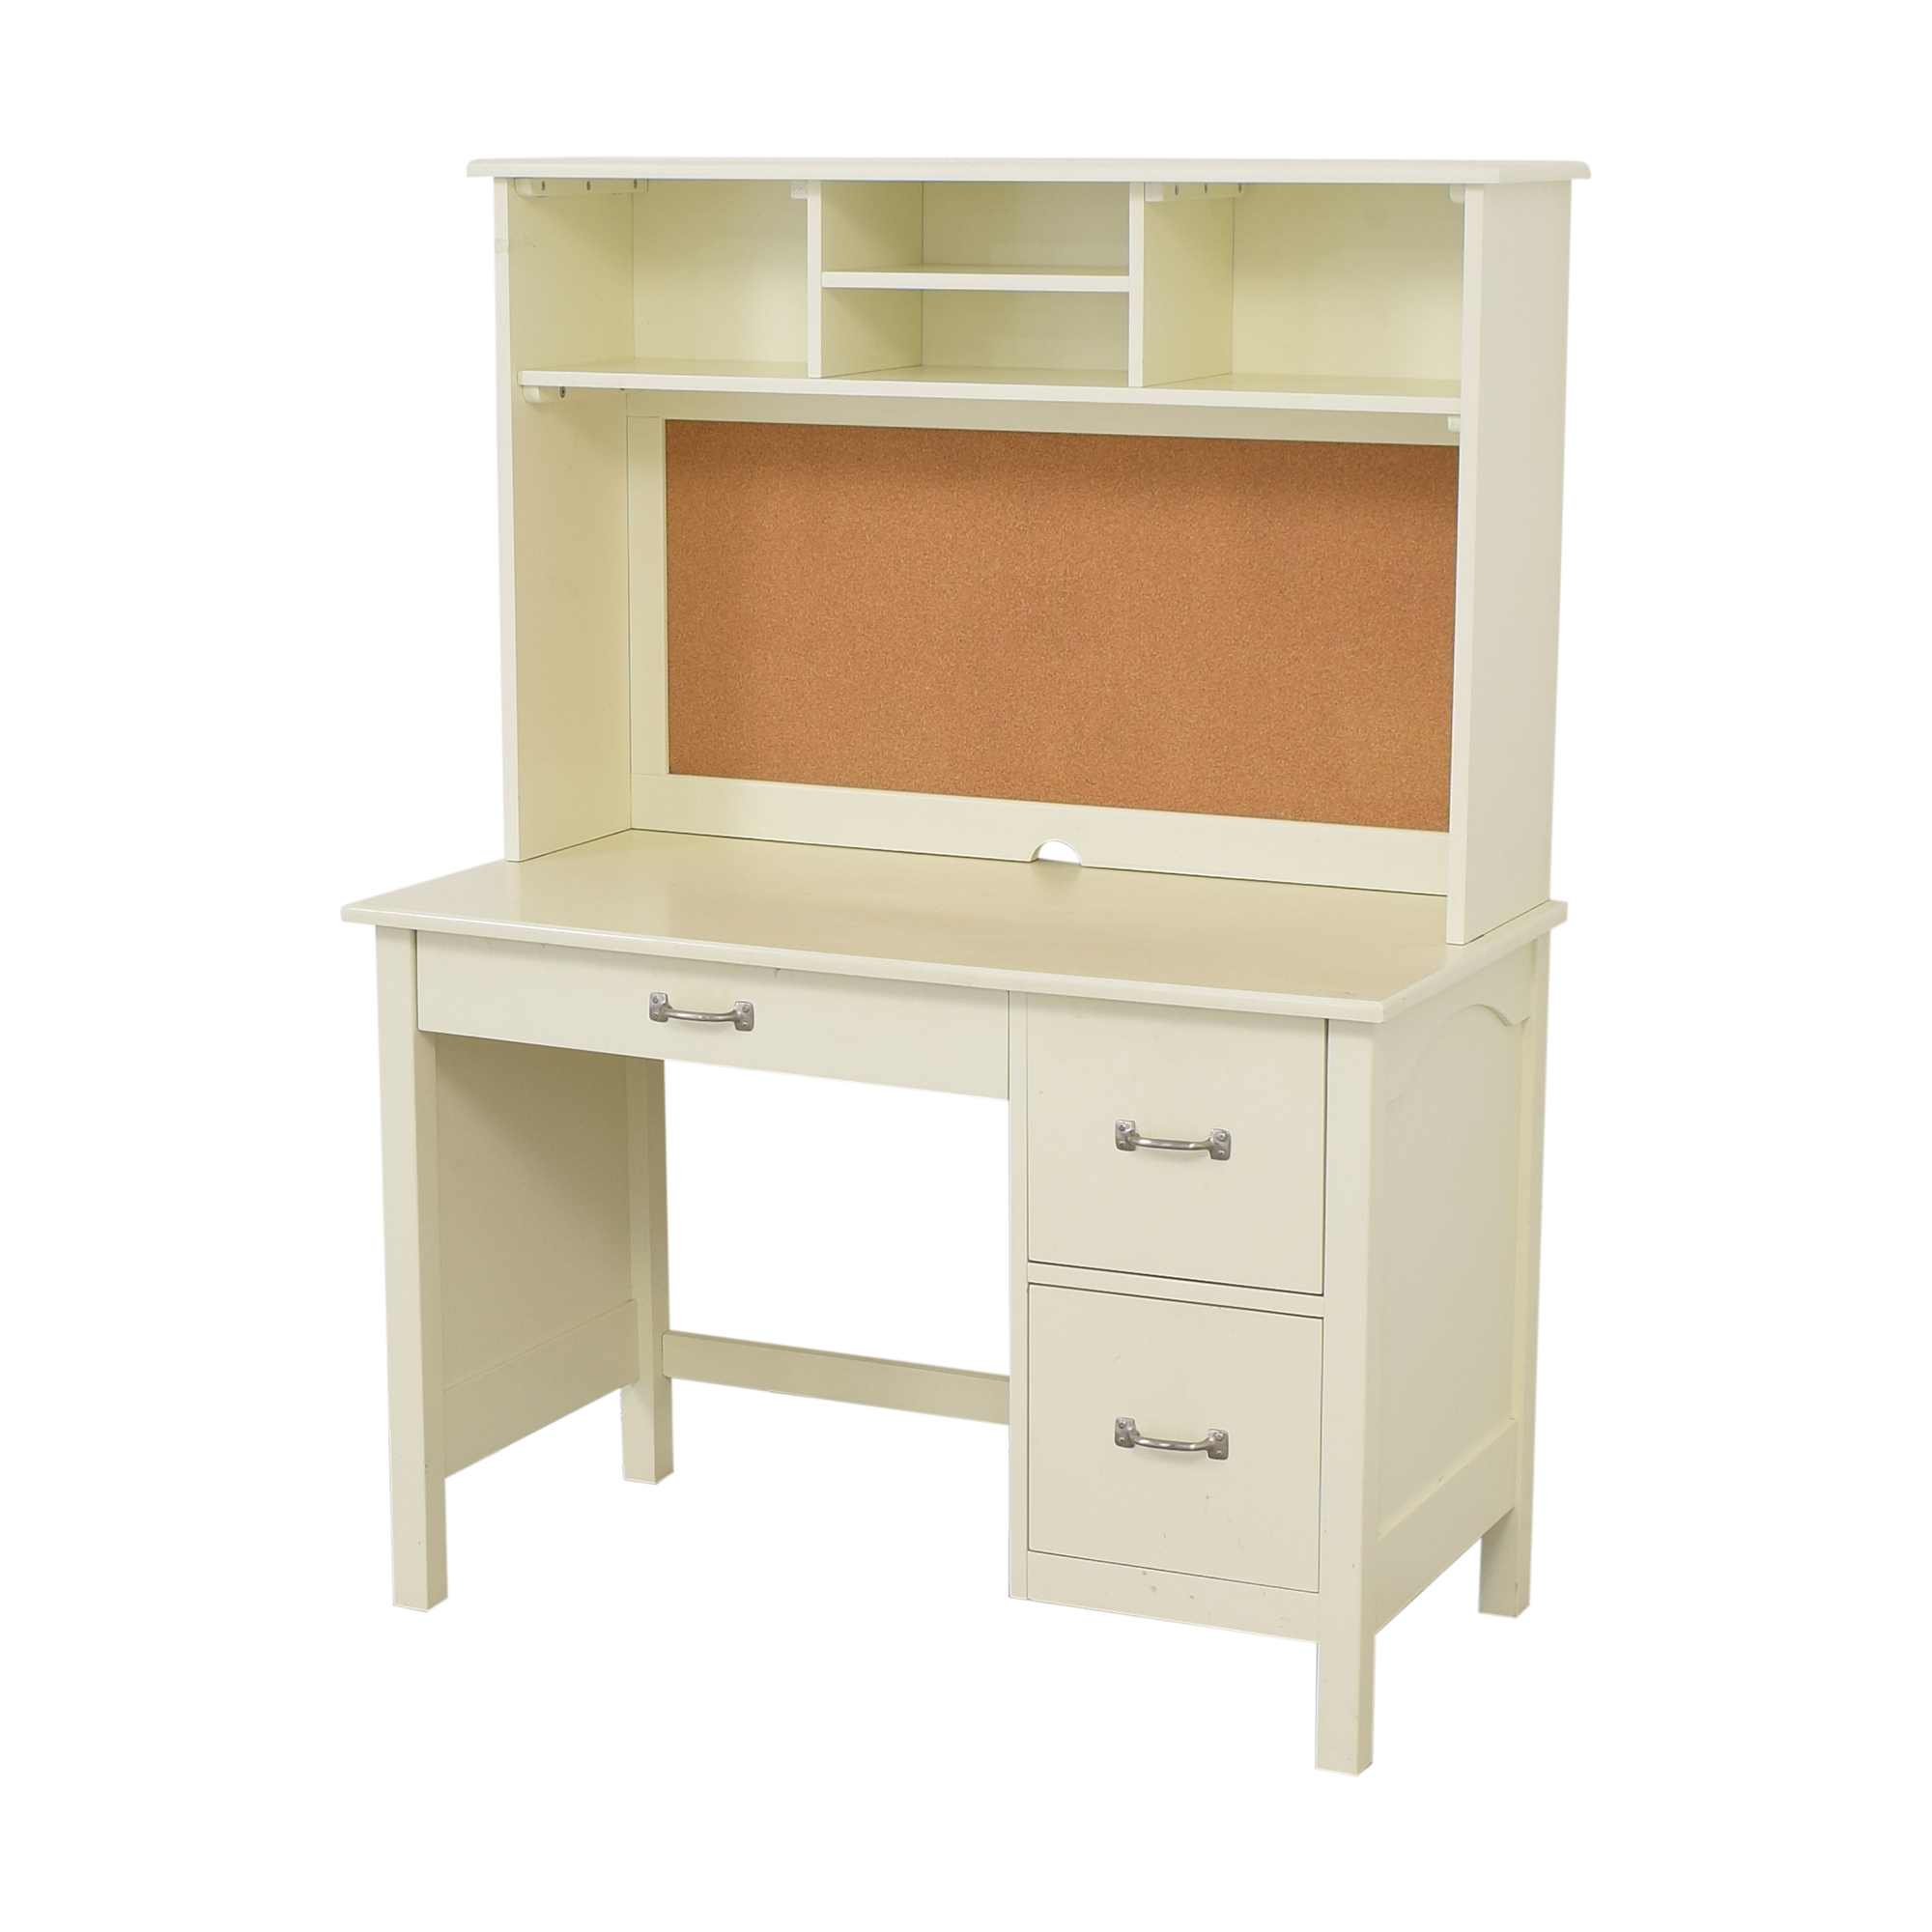 Pottery Barn Kids Pottery Barn Kids Kendall Desk with Hutch pa